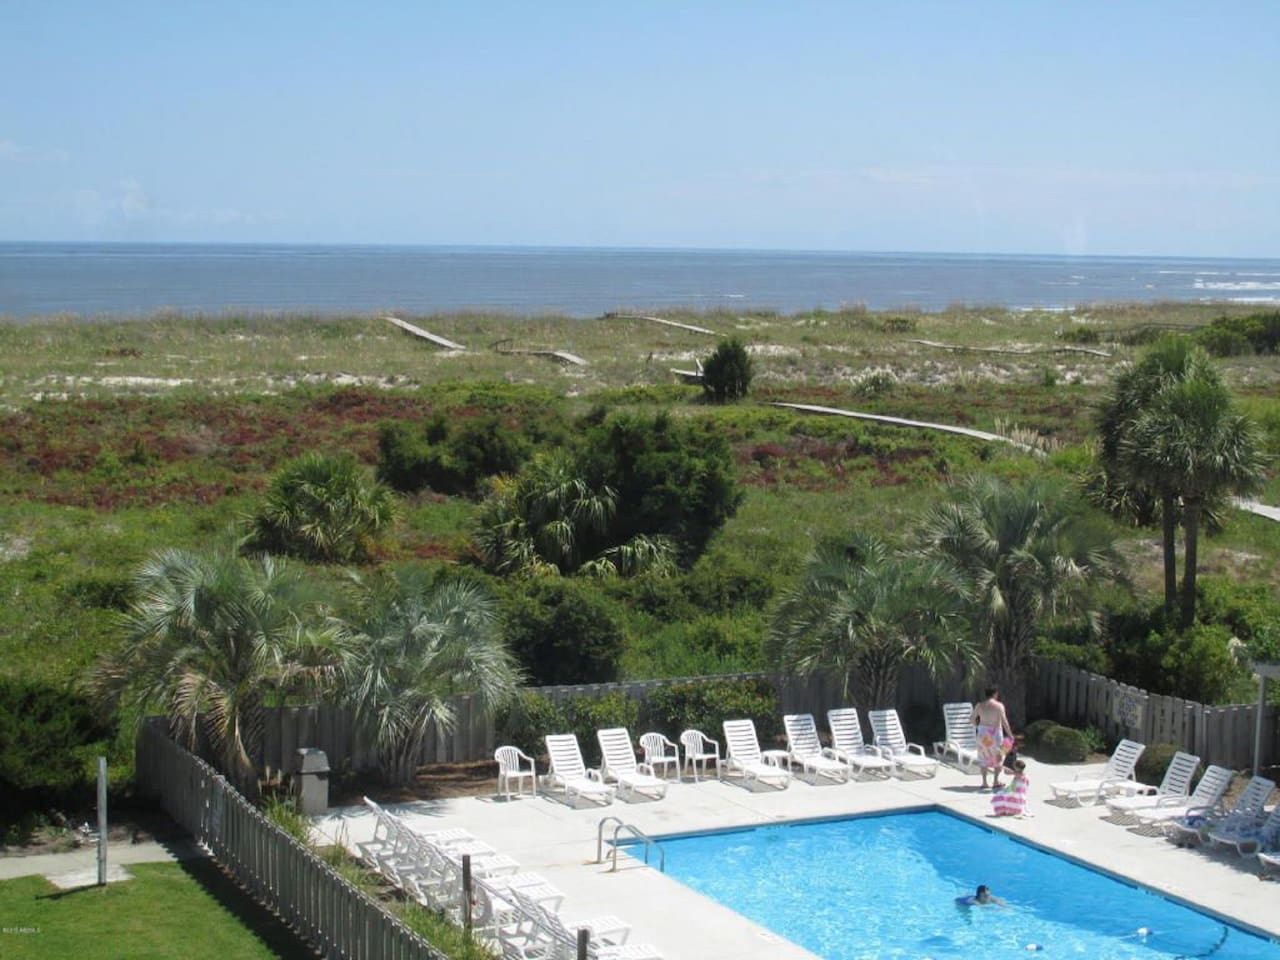 Pool and ocean view from our balcony